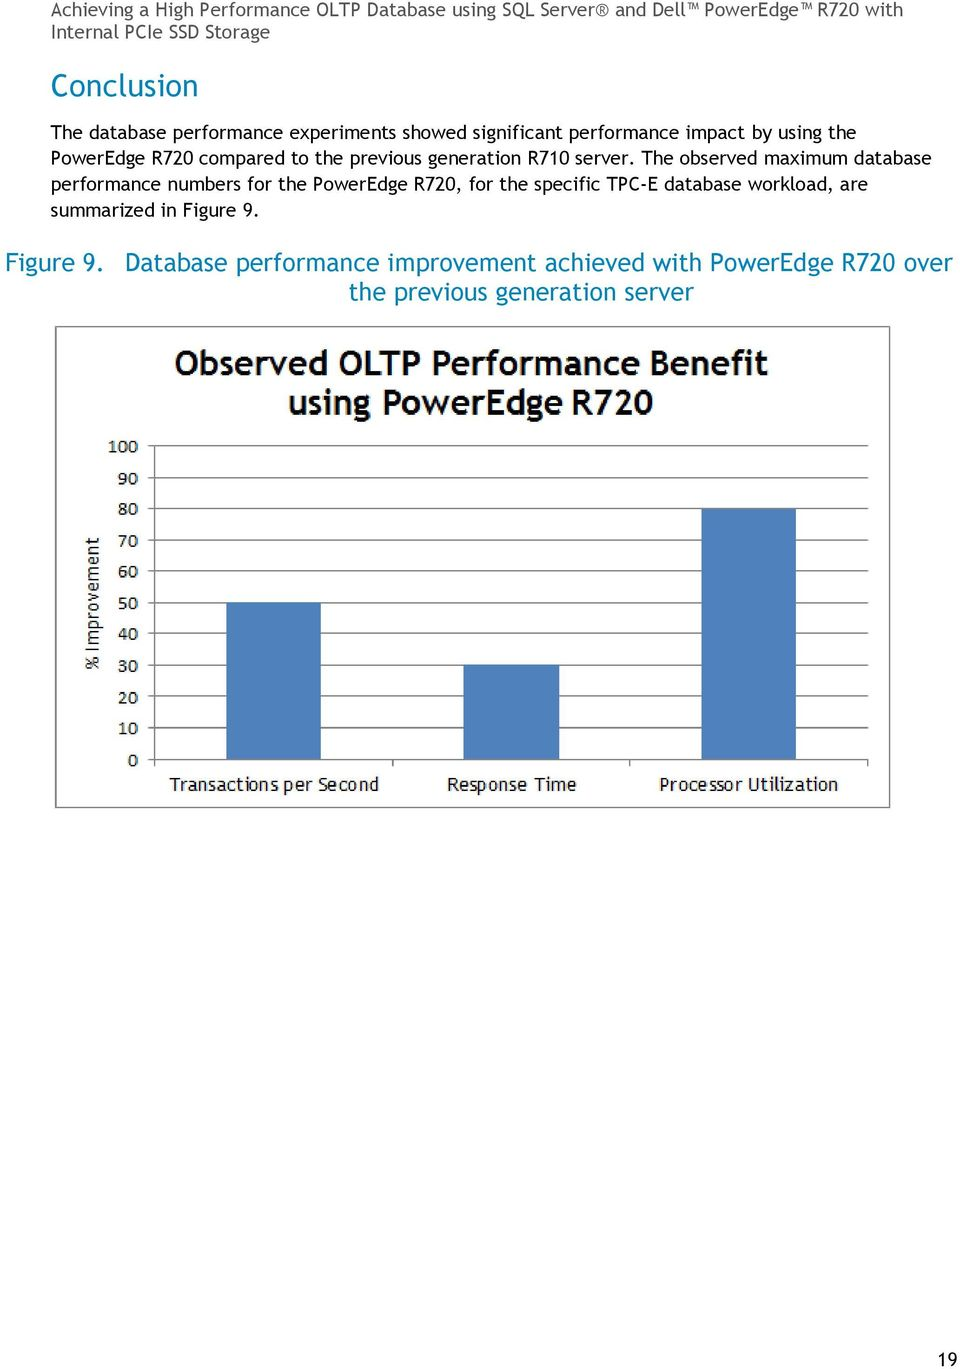 The observed maximum database performance numbers for the PowerEdge R720, for the specific TPC-E